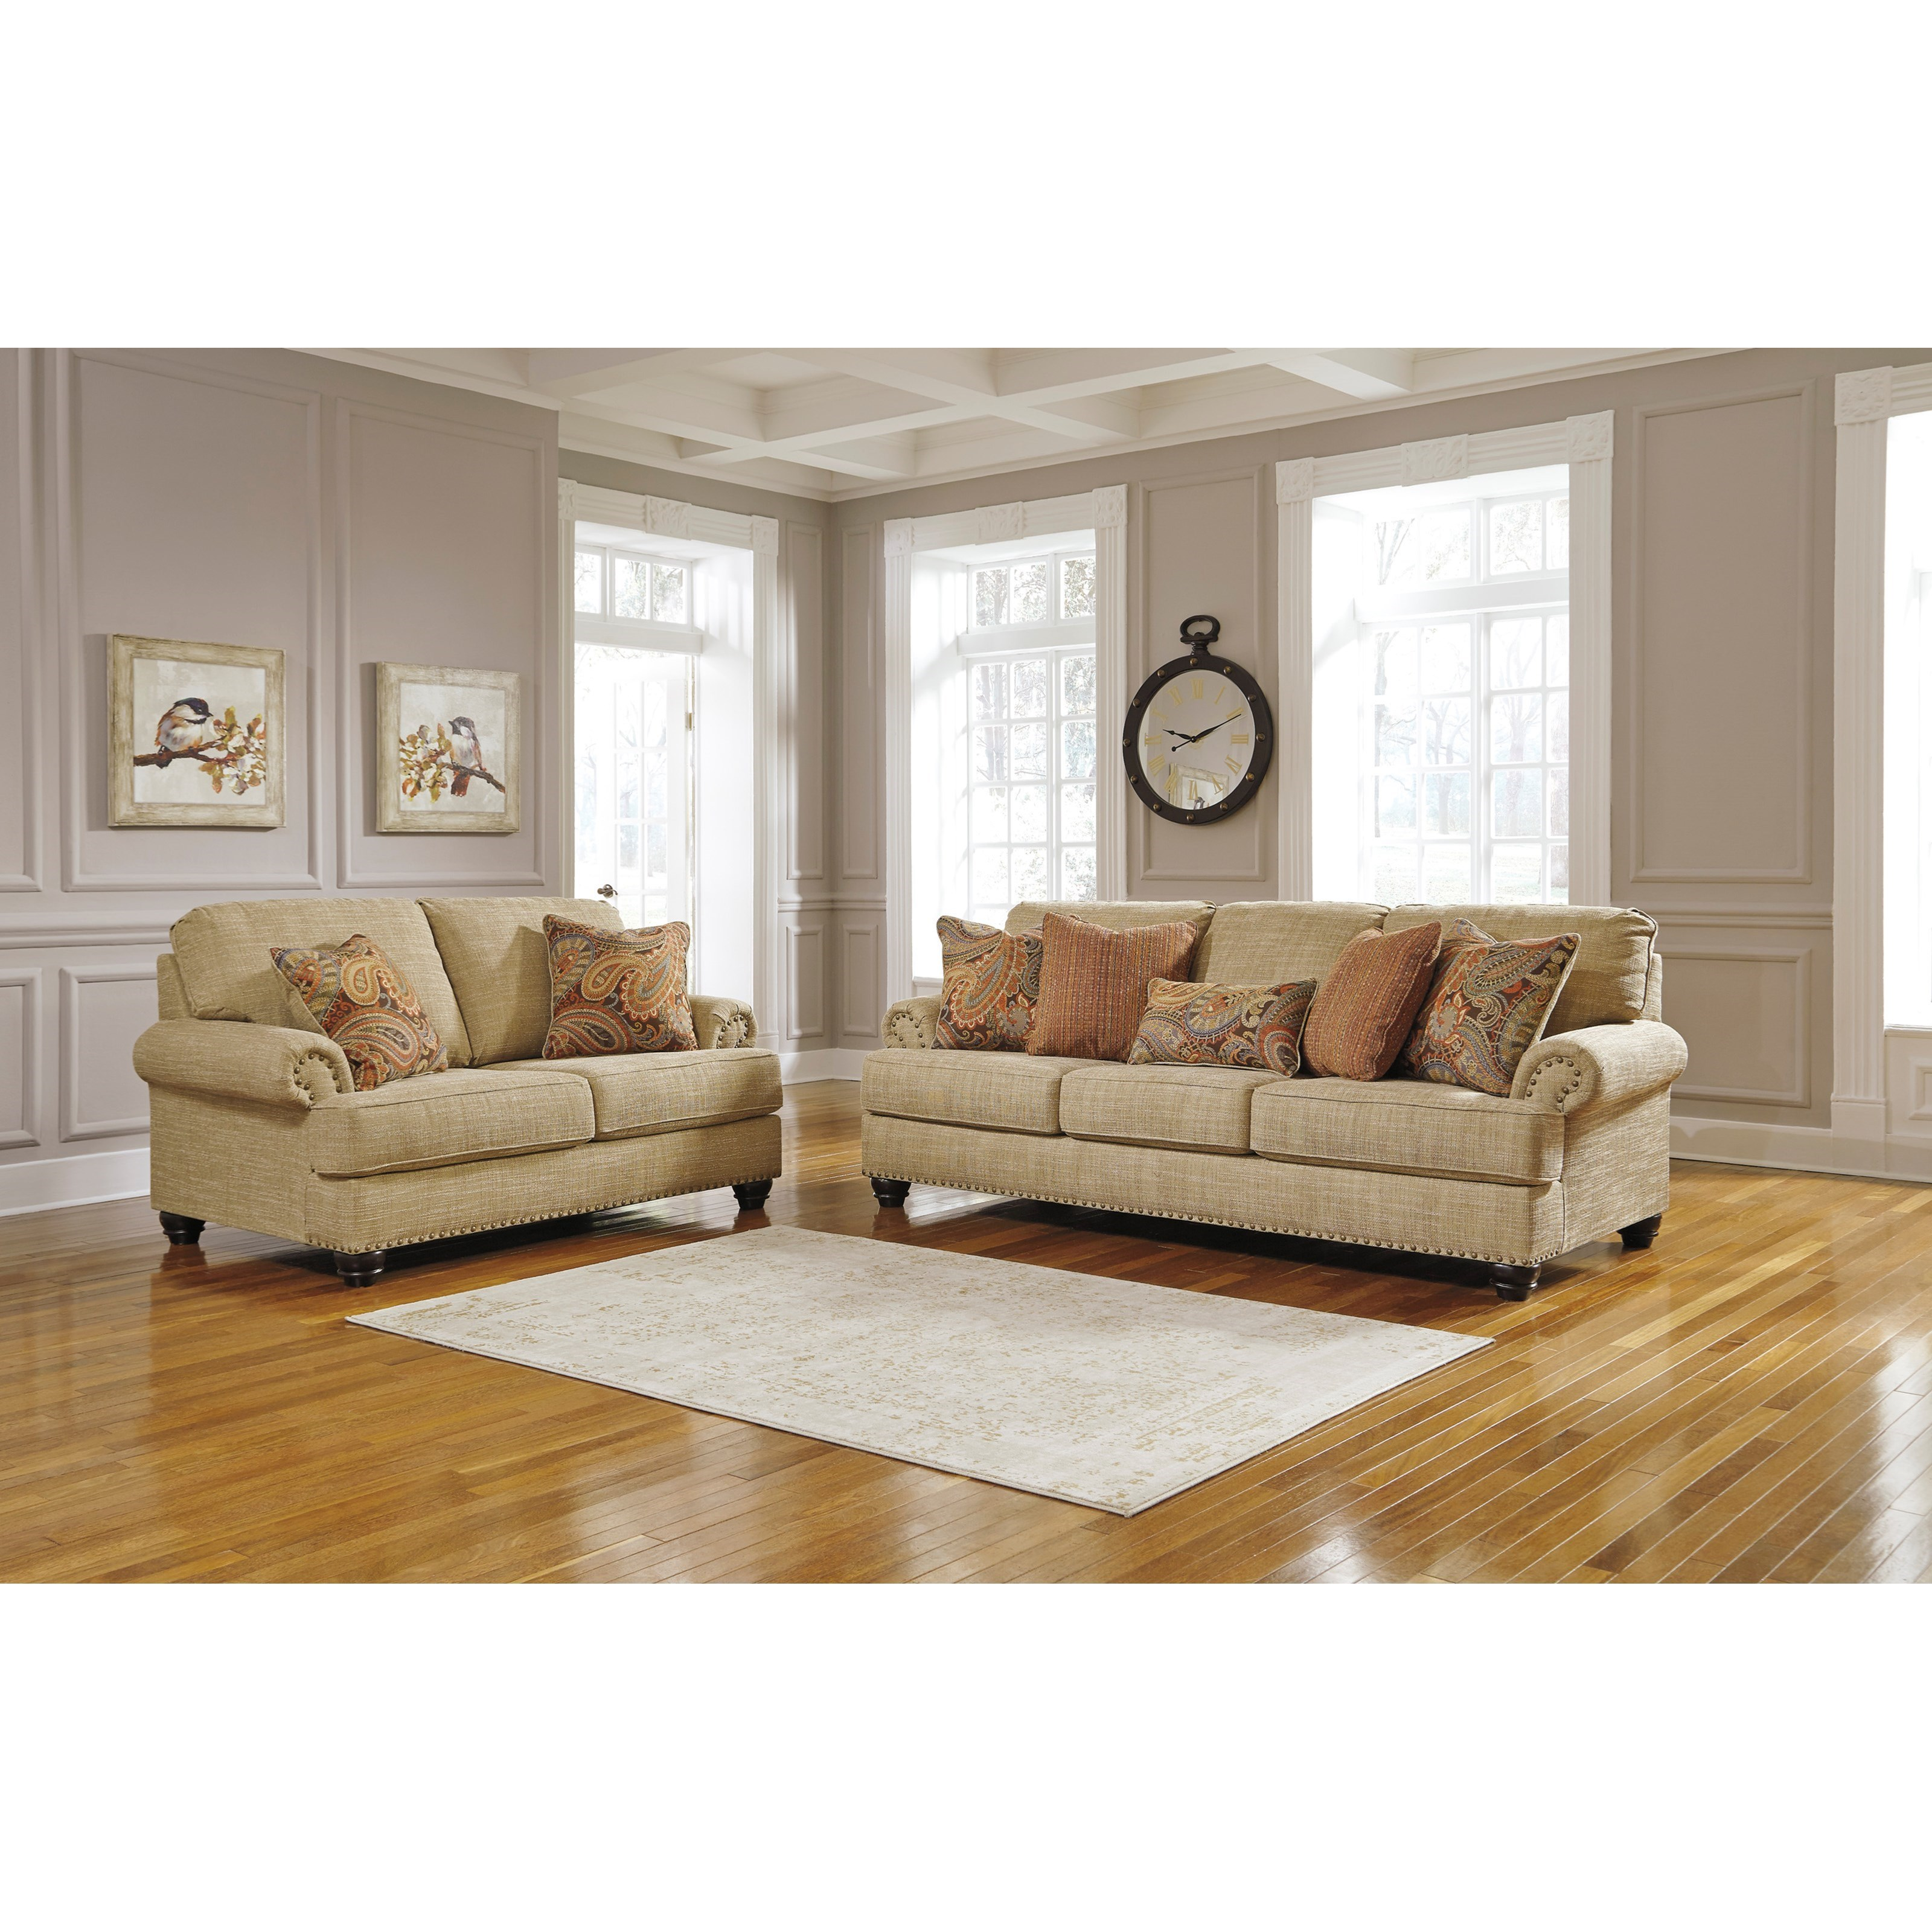 Benchcraft Candoro Stationary Living Room Group Value City Furniture Stationary Living Room